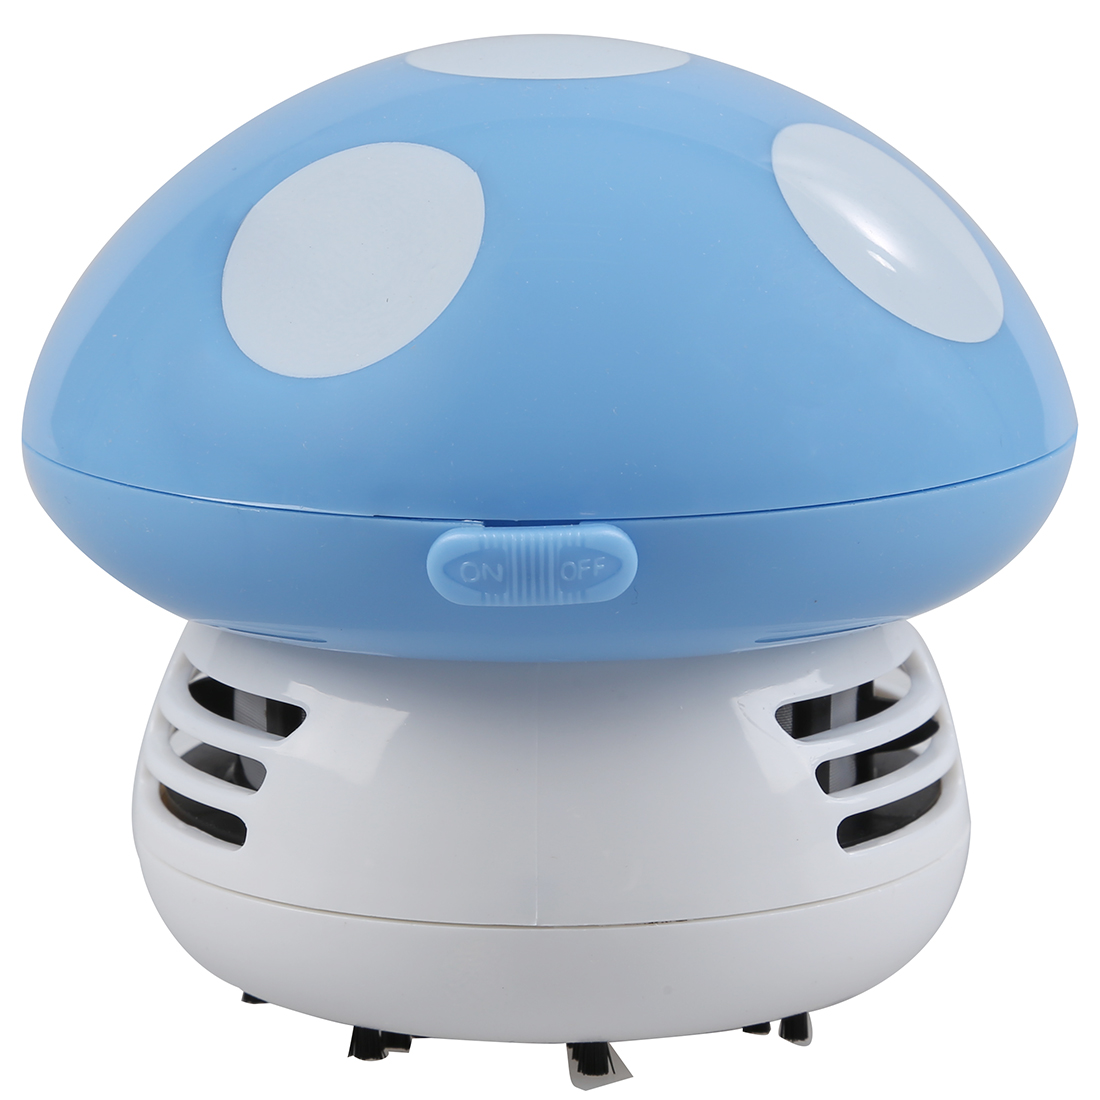 New Home Handheld Mushroom Shaped Mini Vacuum Cleaner Car Laptop keyboard Desktop Dust cleaner-blue